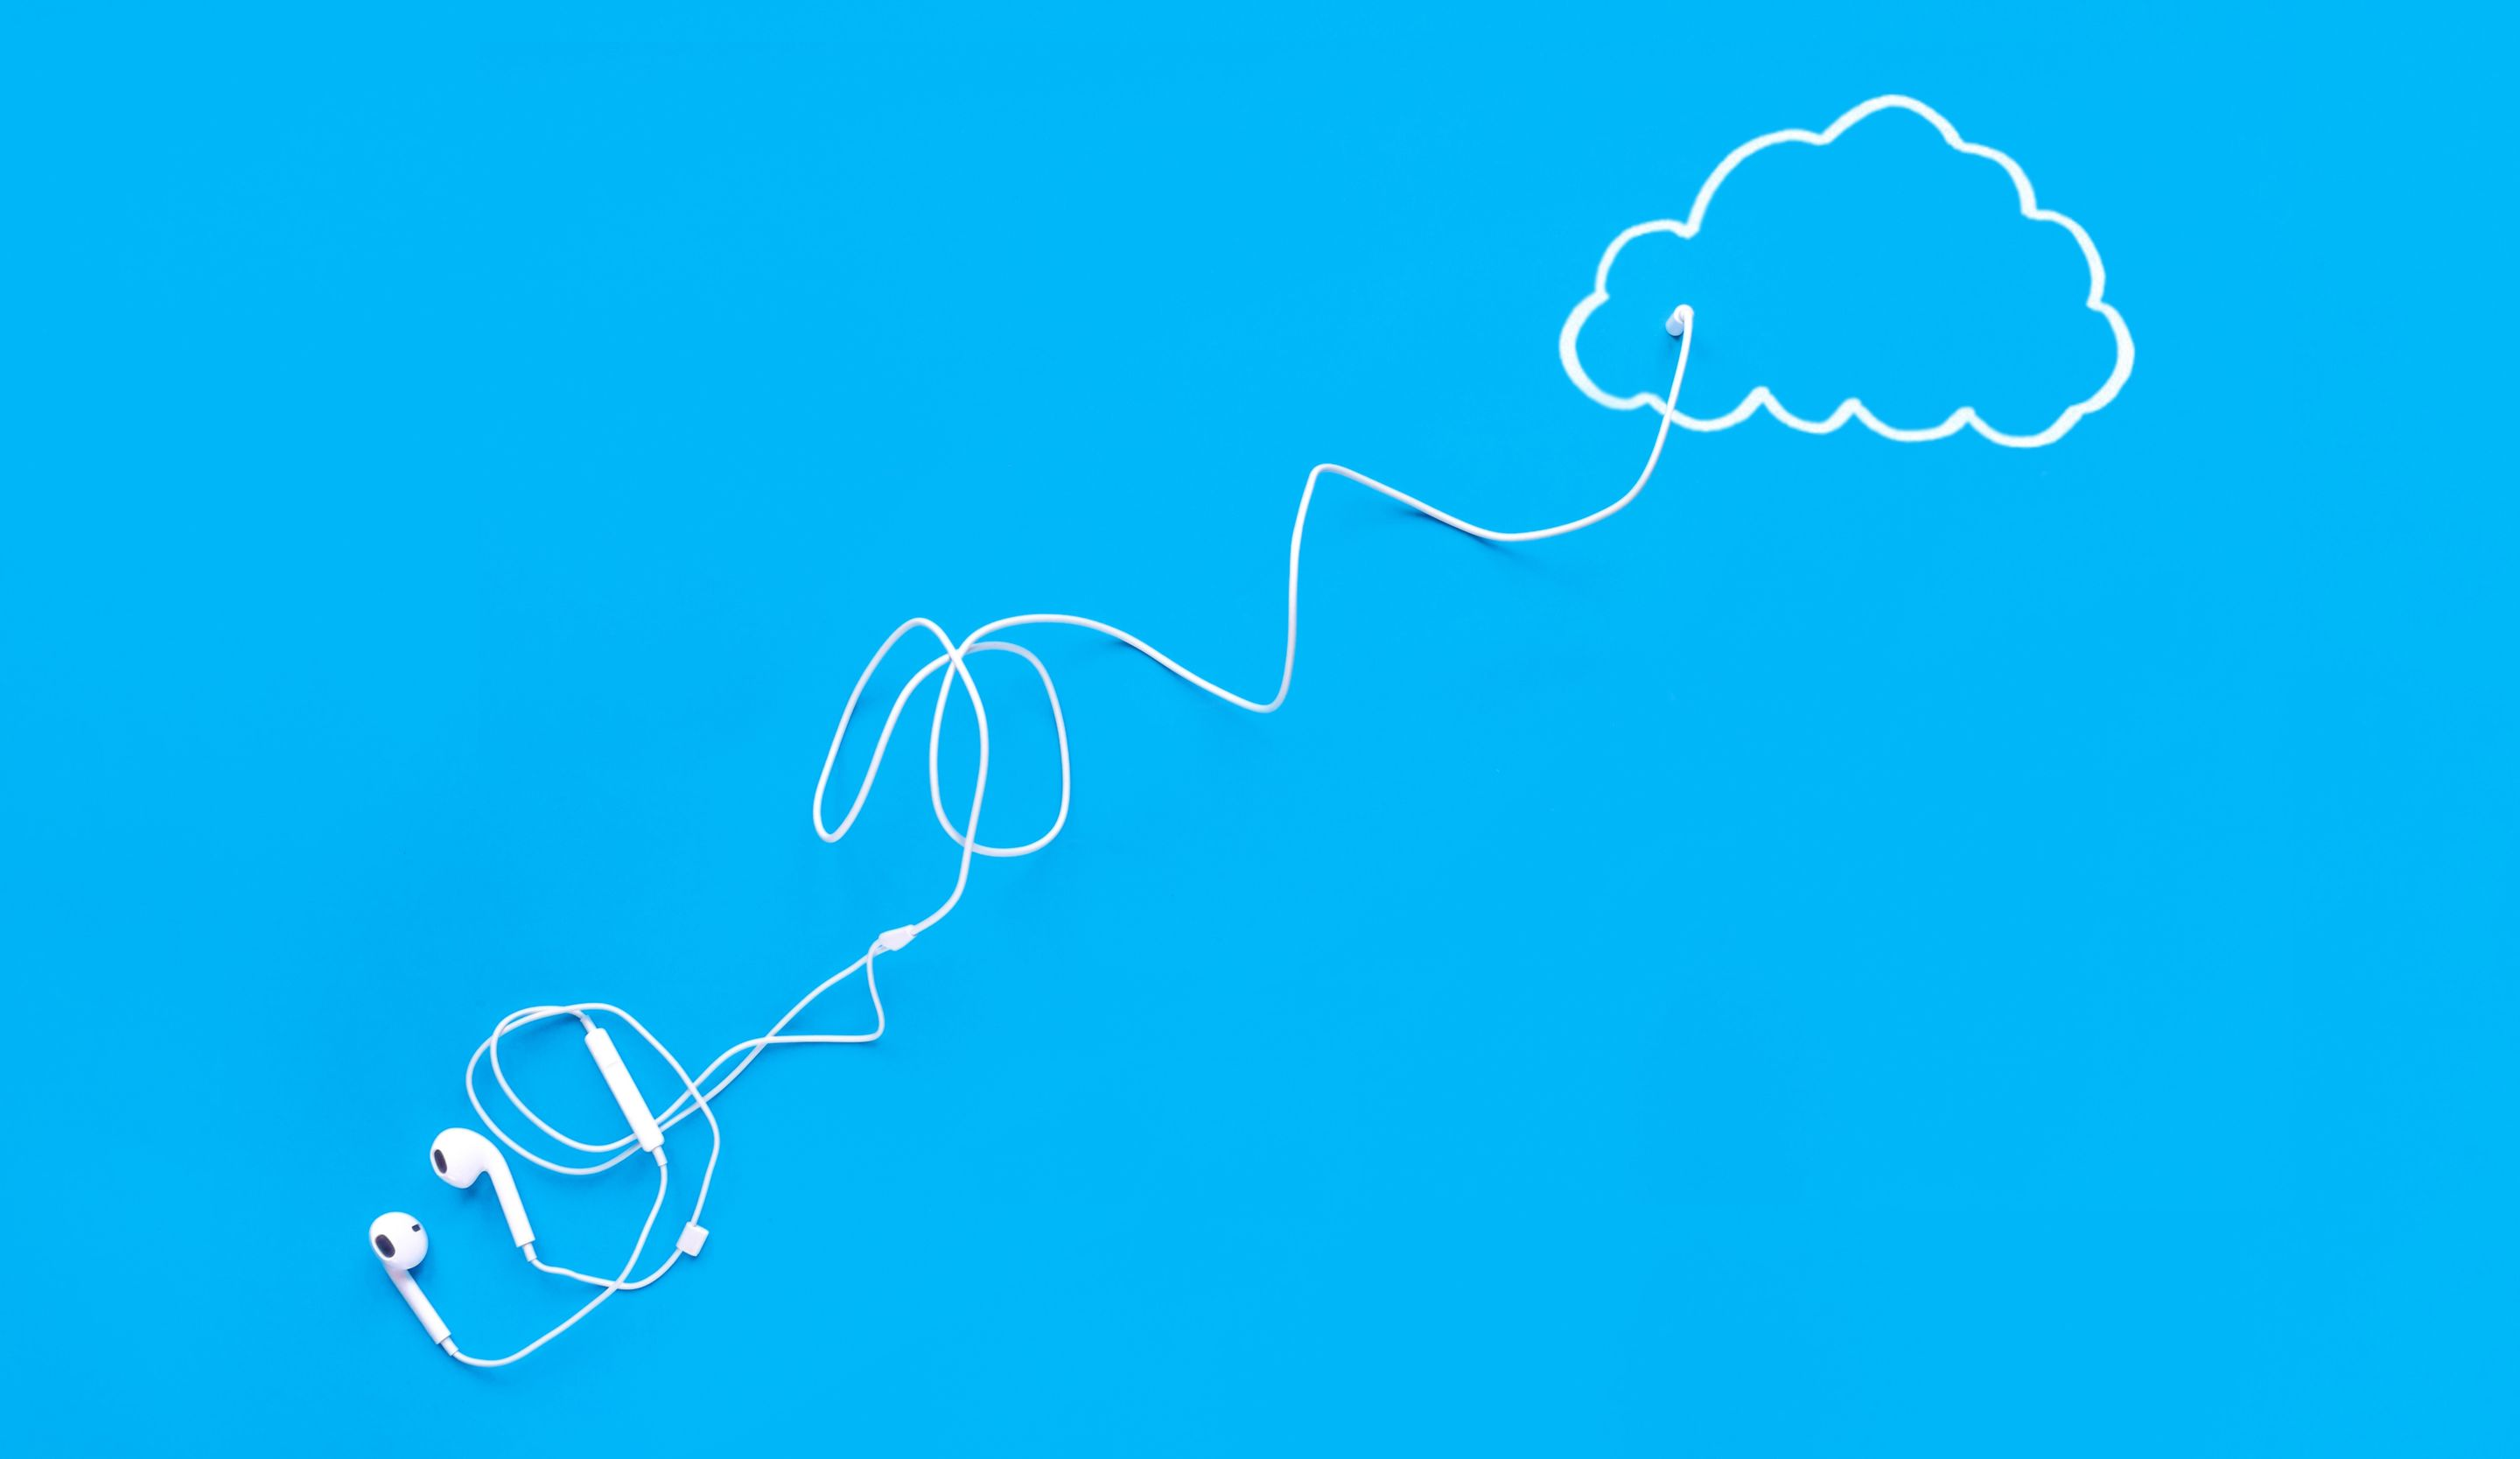 Photo illustration of earbuds plugged into cloud